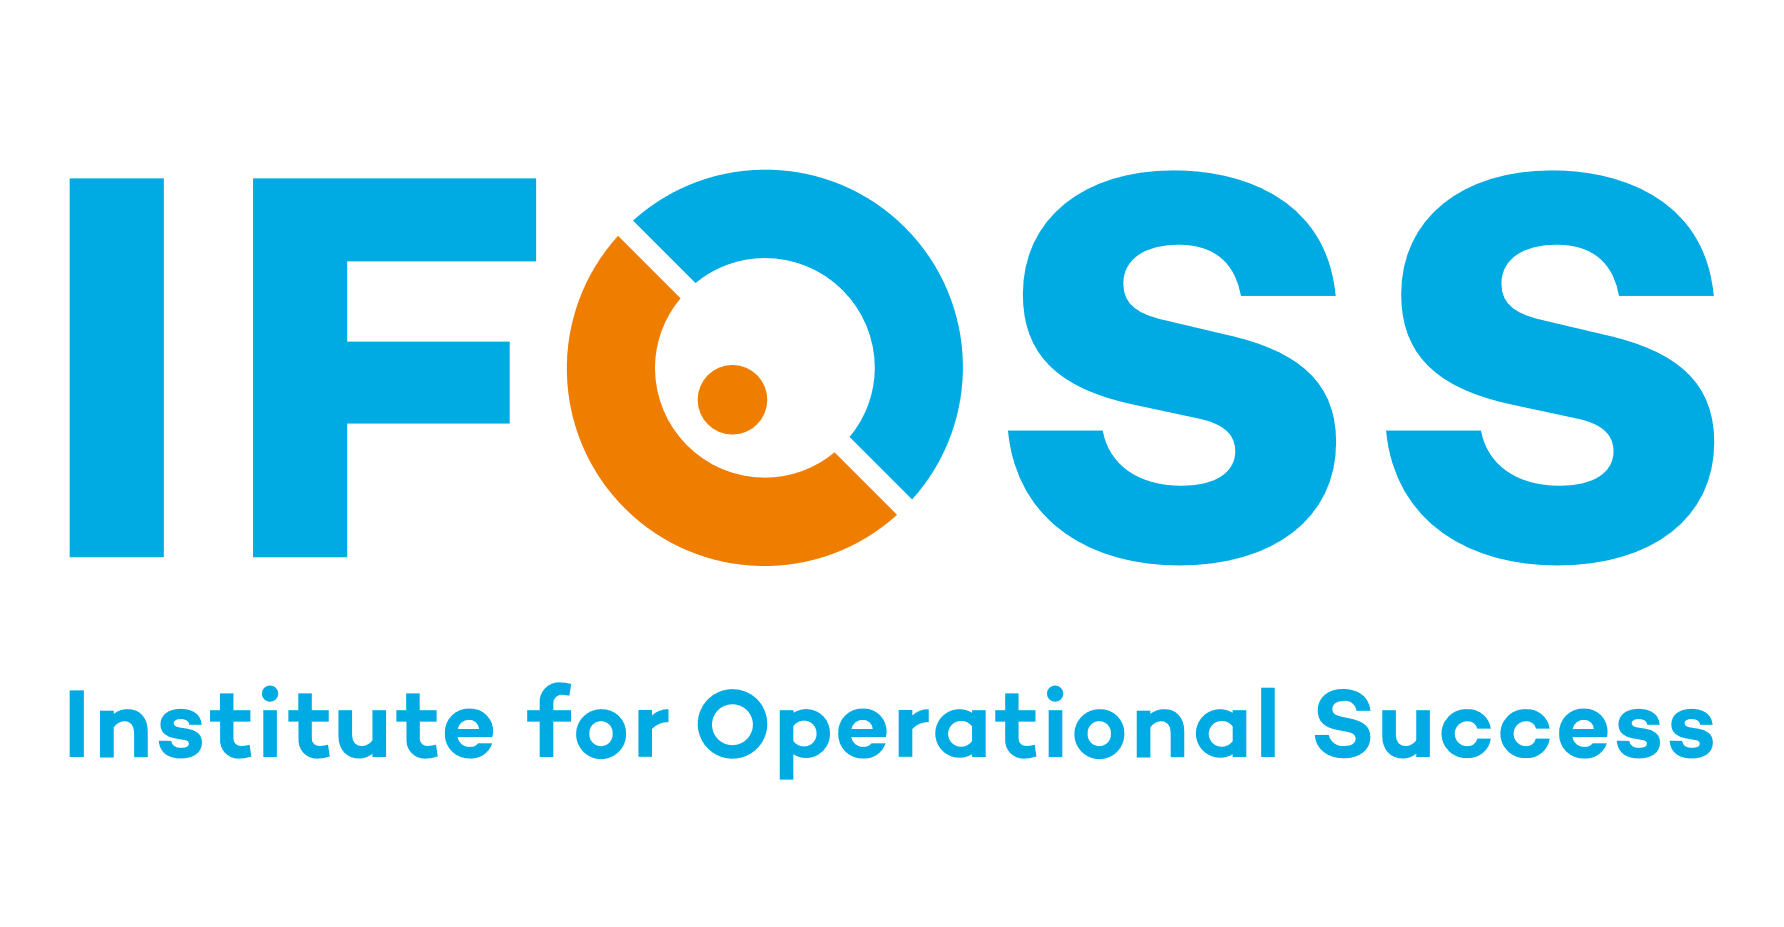 IFOSS - Institute for Operational Success